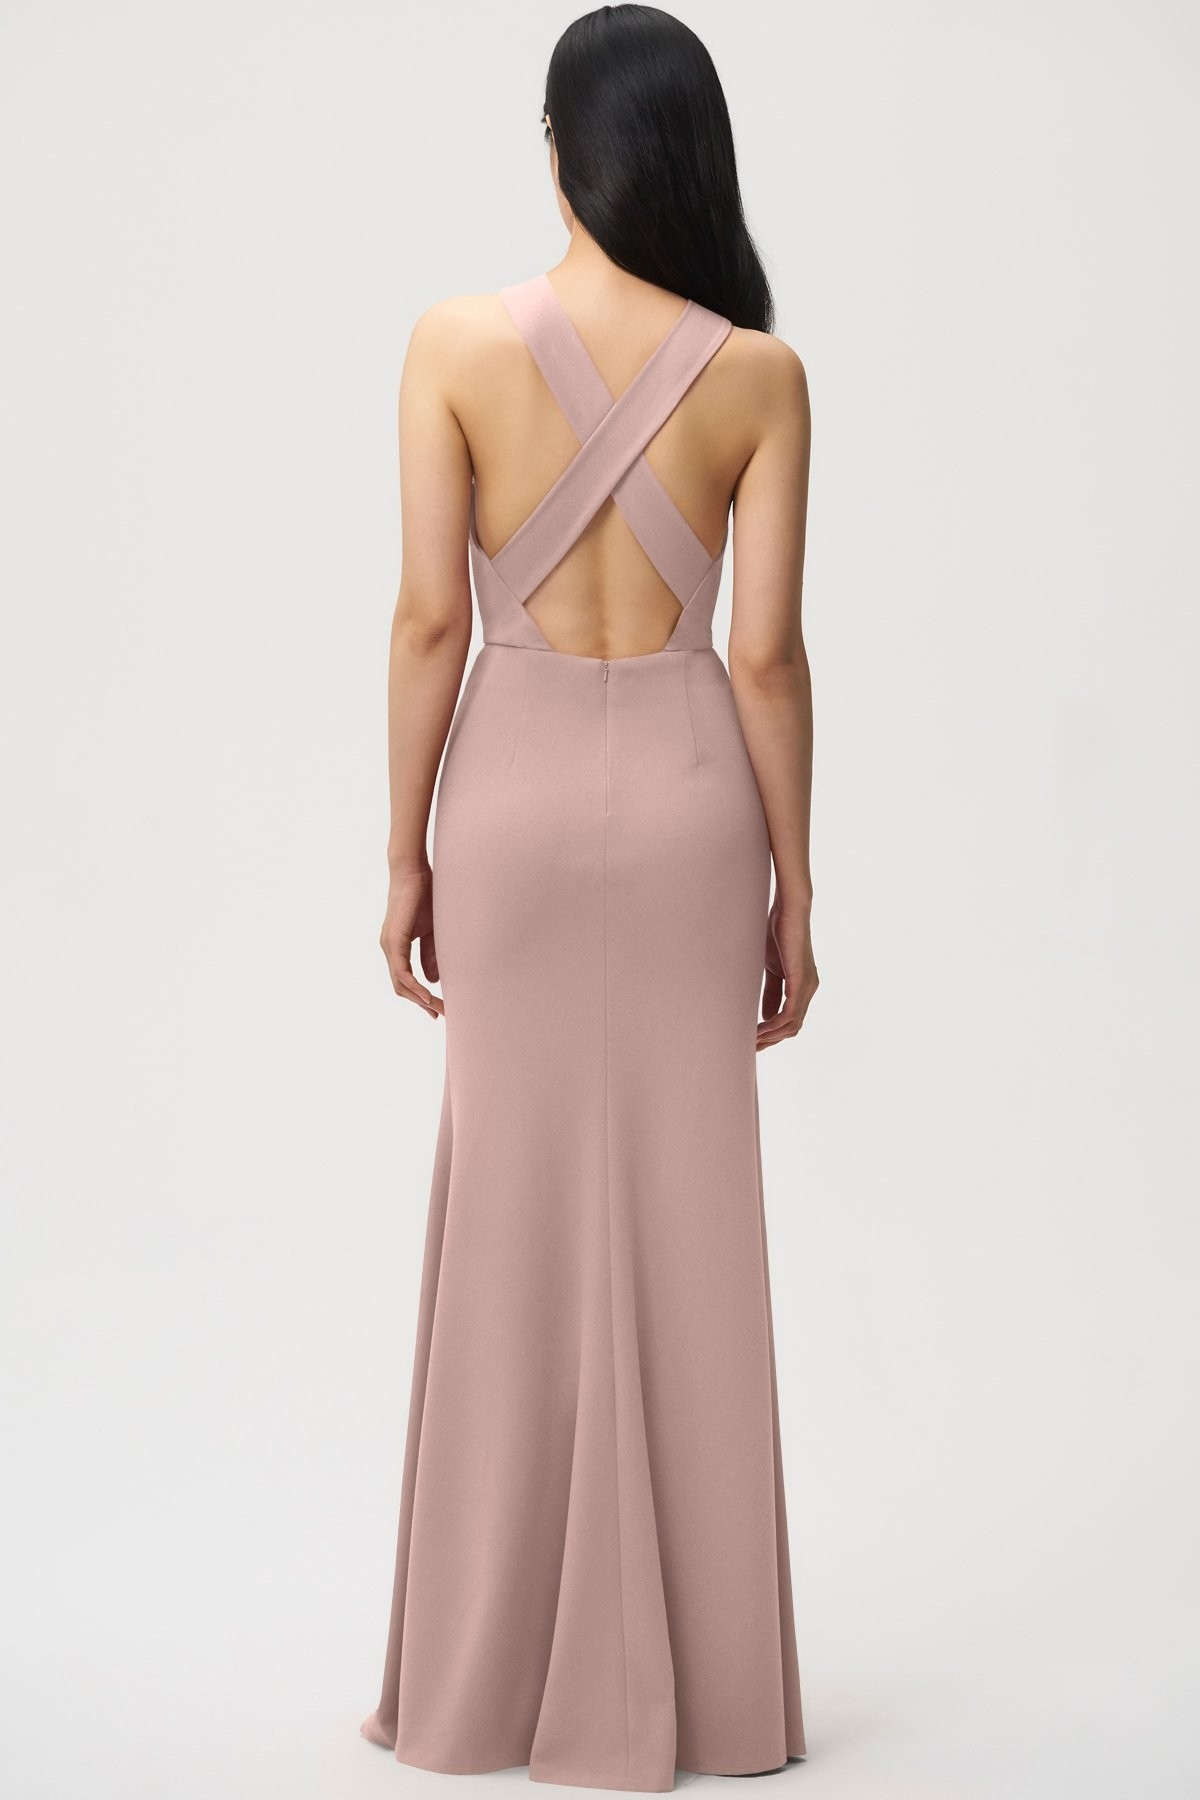 Kayleigh Bridesmaids Dress by Jenny Yoo - Whipped Apricot